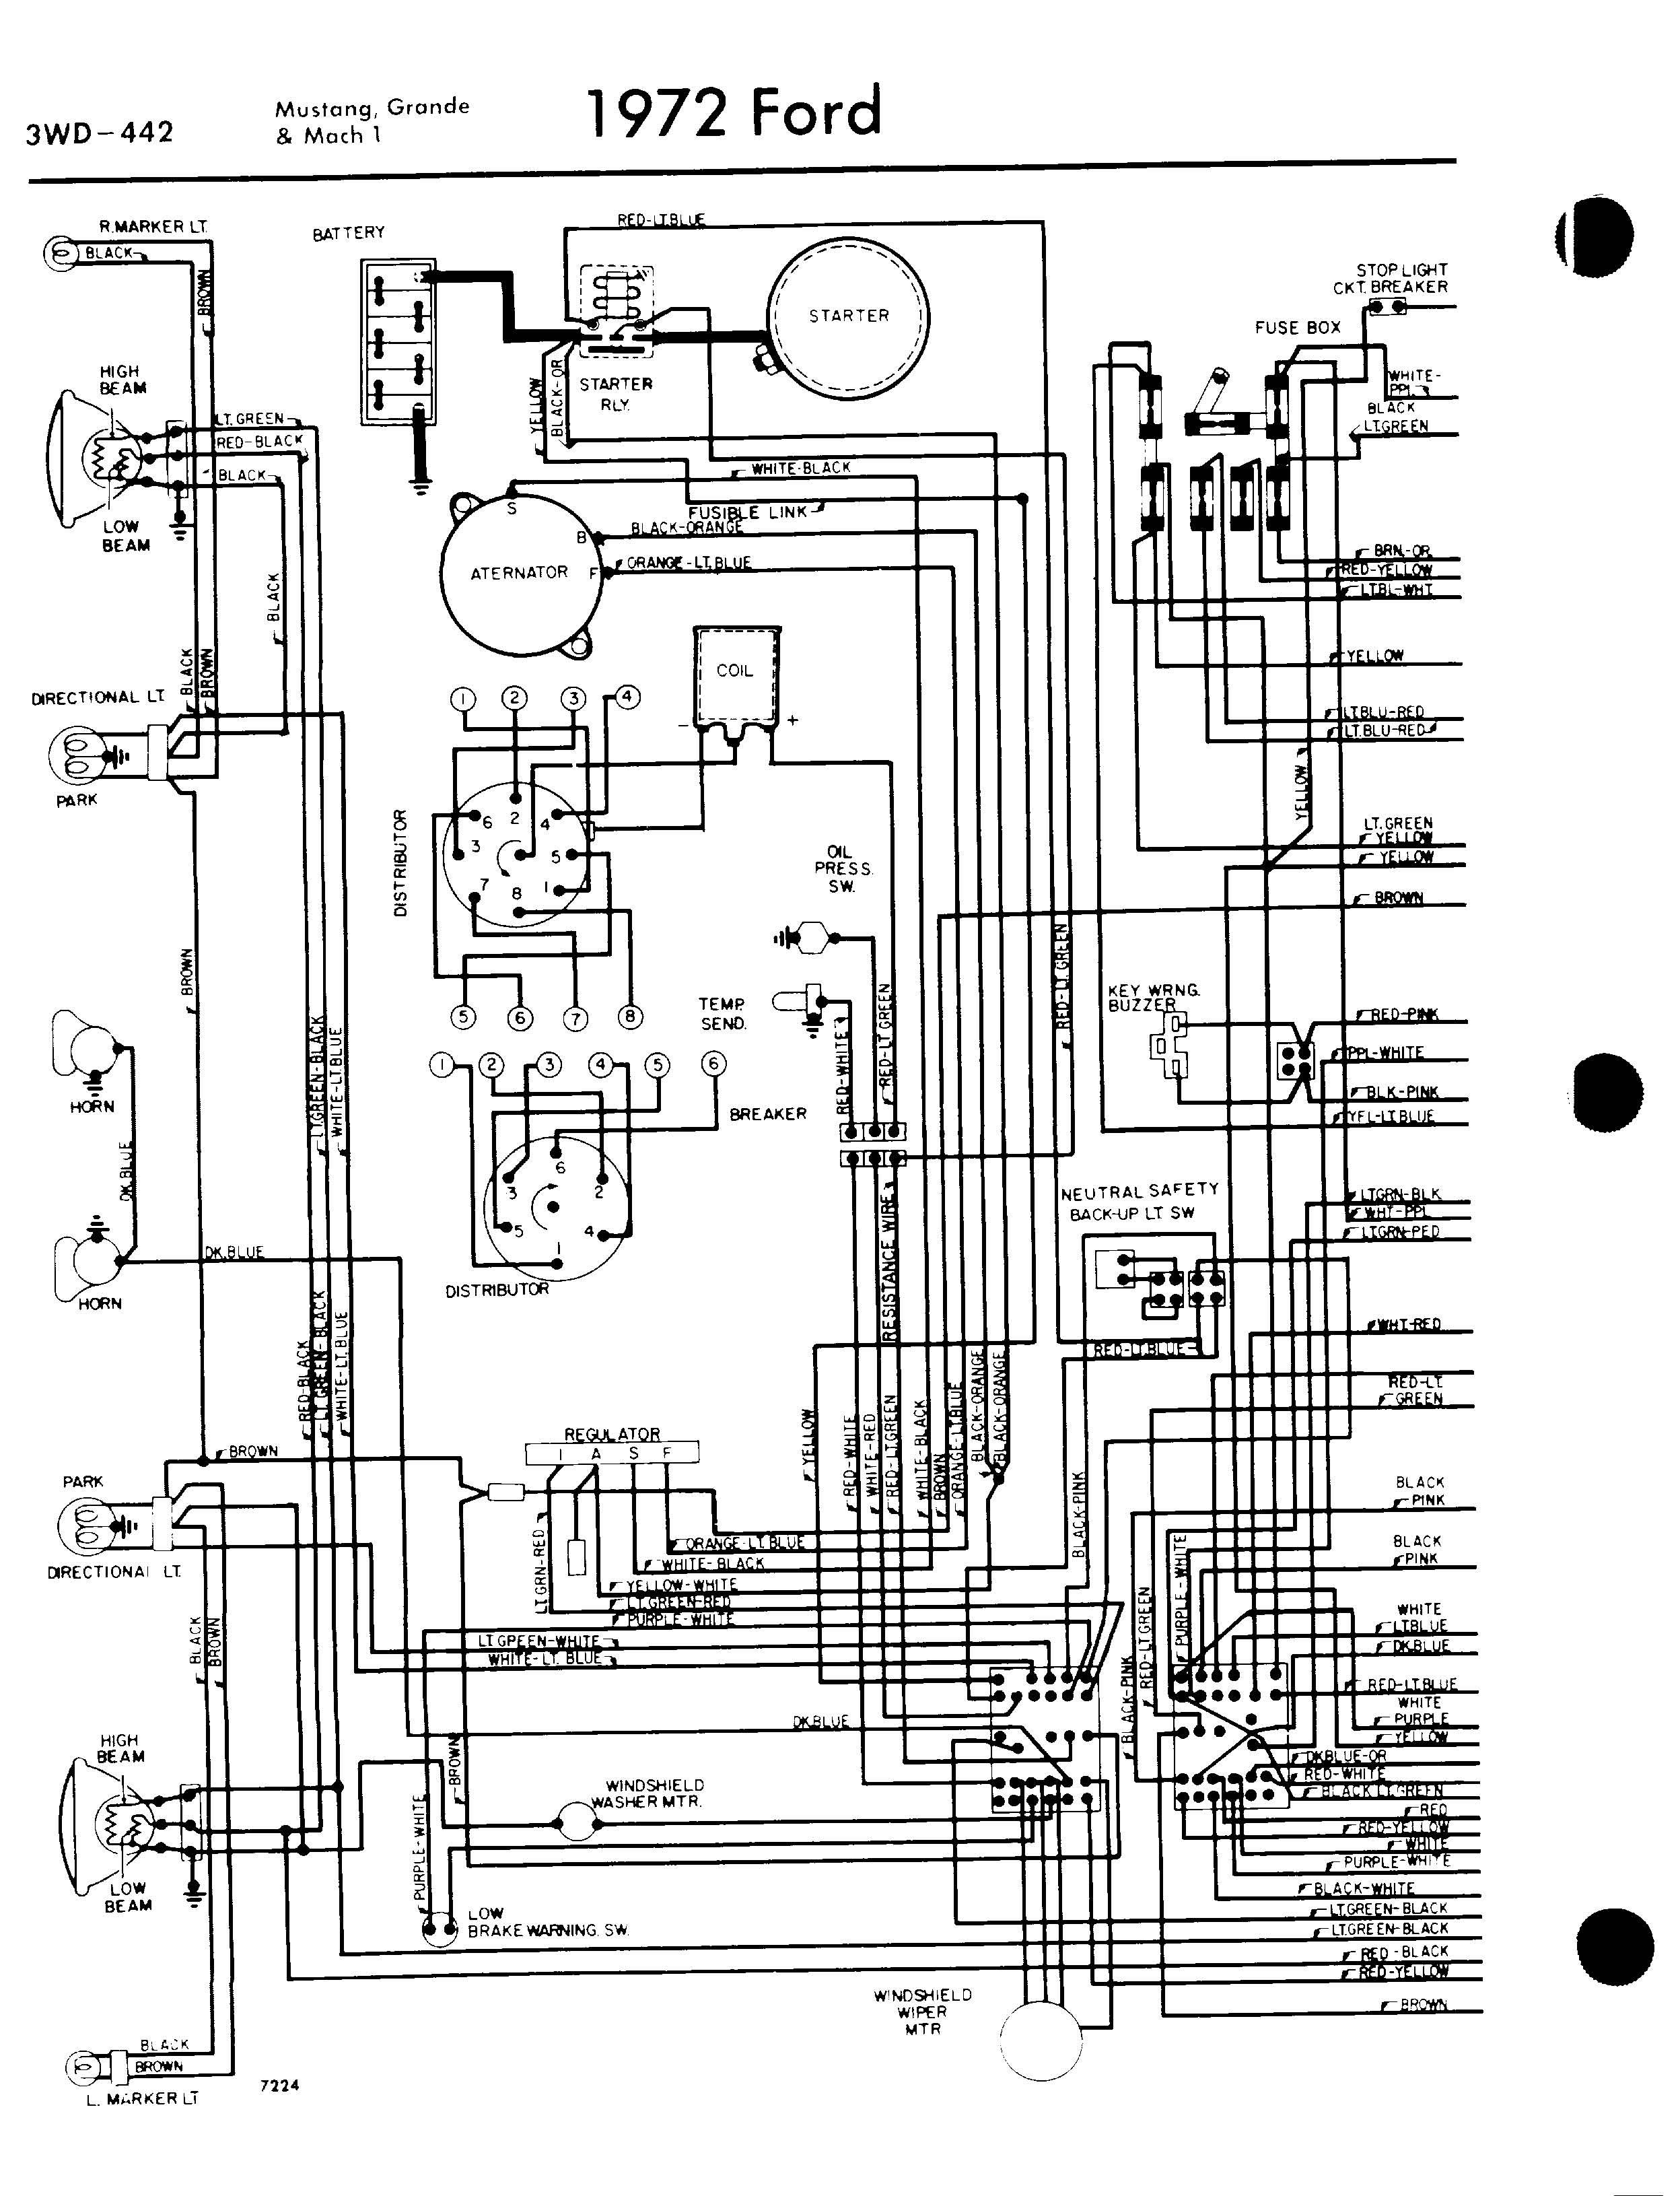 1971 ford ignition diagram wiring diagram schematics1971 c10 wiring diagram wiring diagram ford ranger ignition wiring diagram 1971 ford f 250 wiring